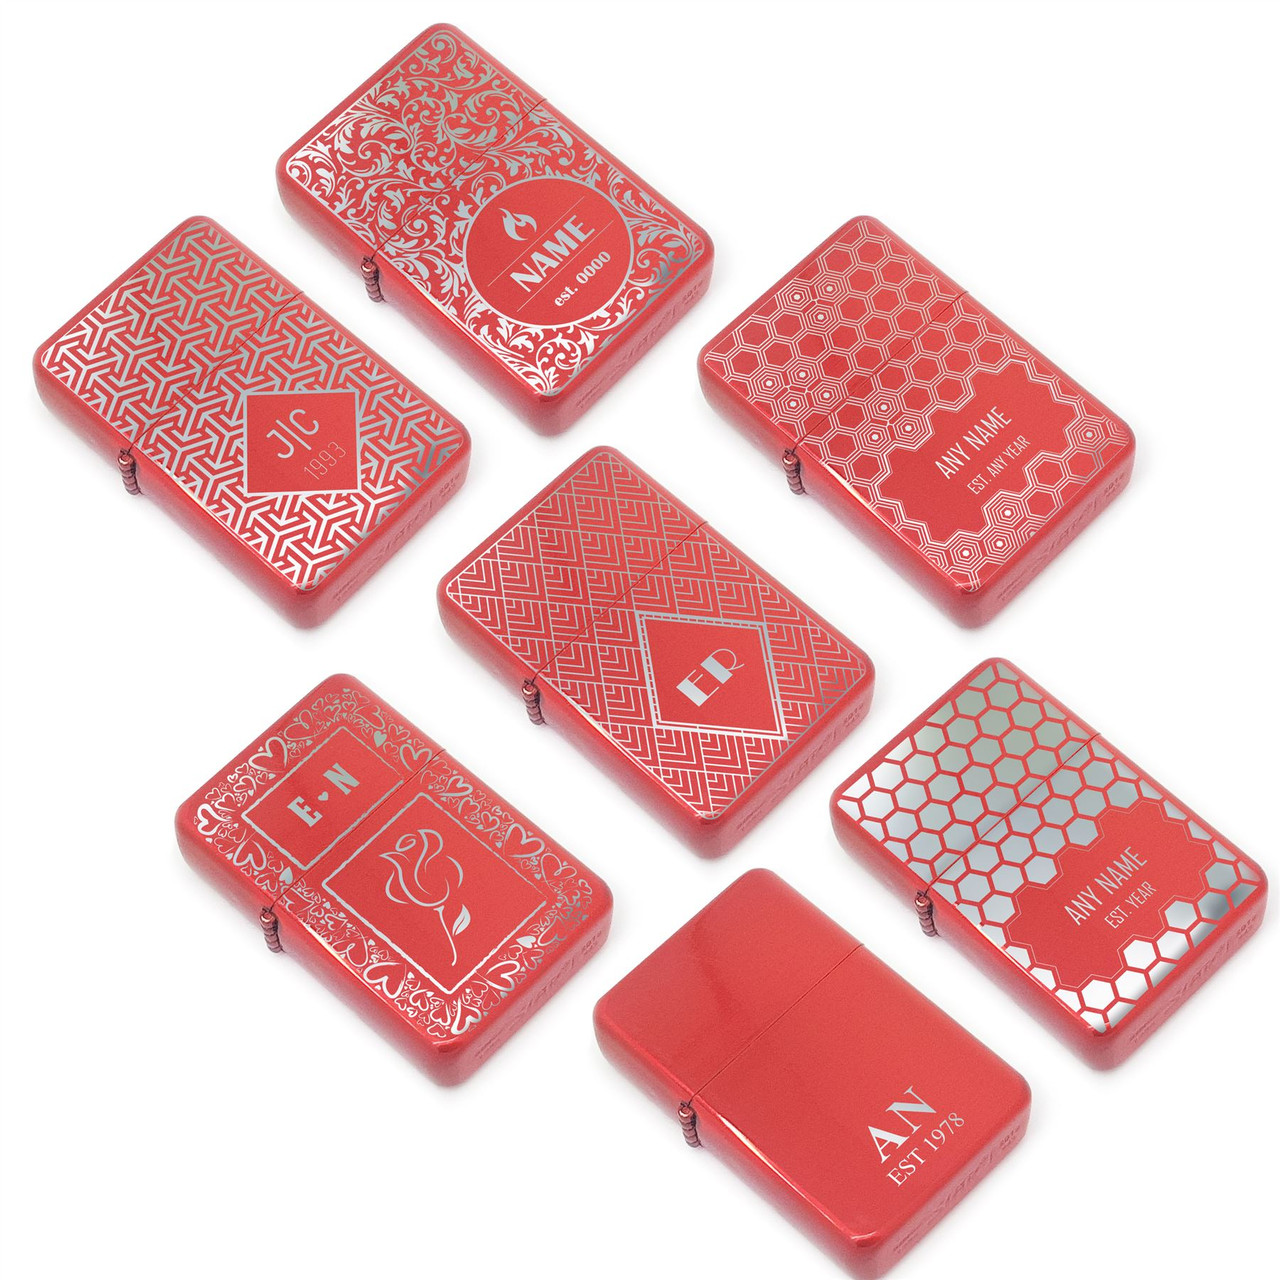 Personalised red lighters with pattern designs, gift box